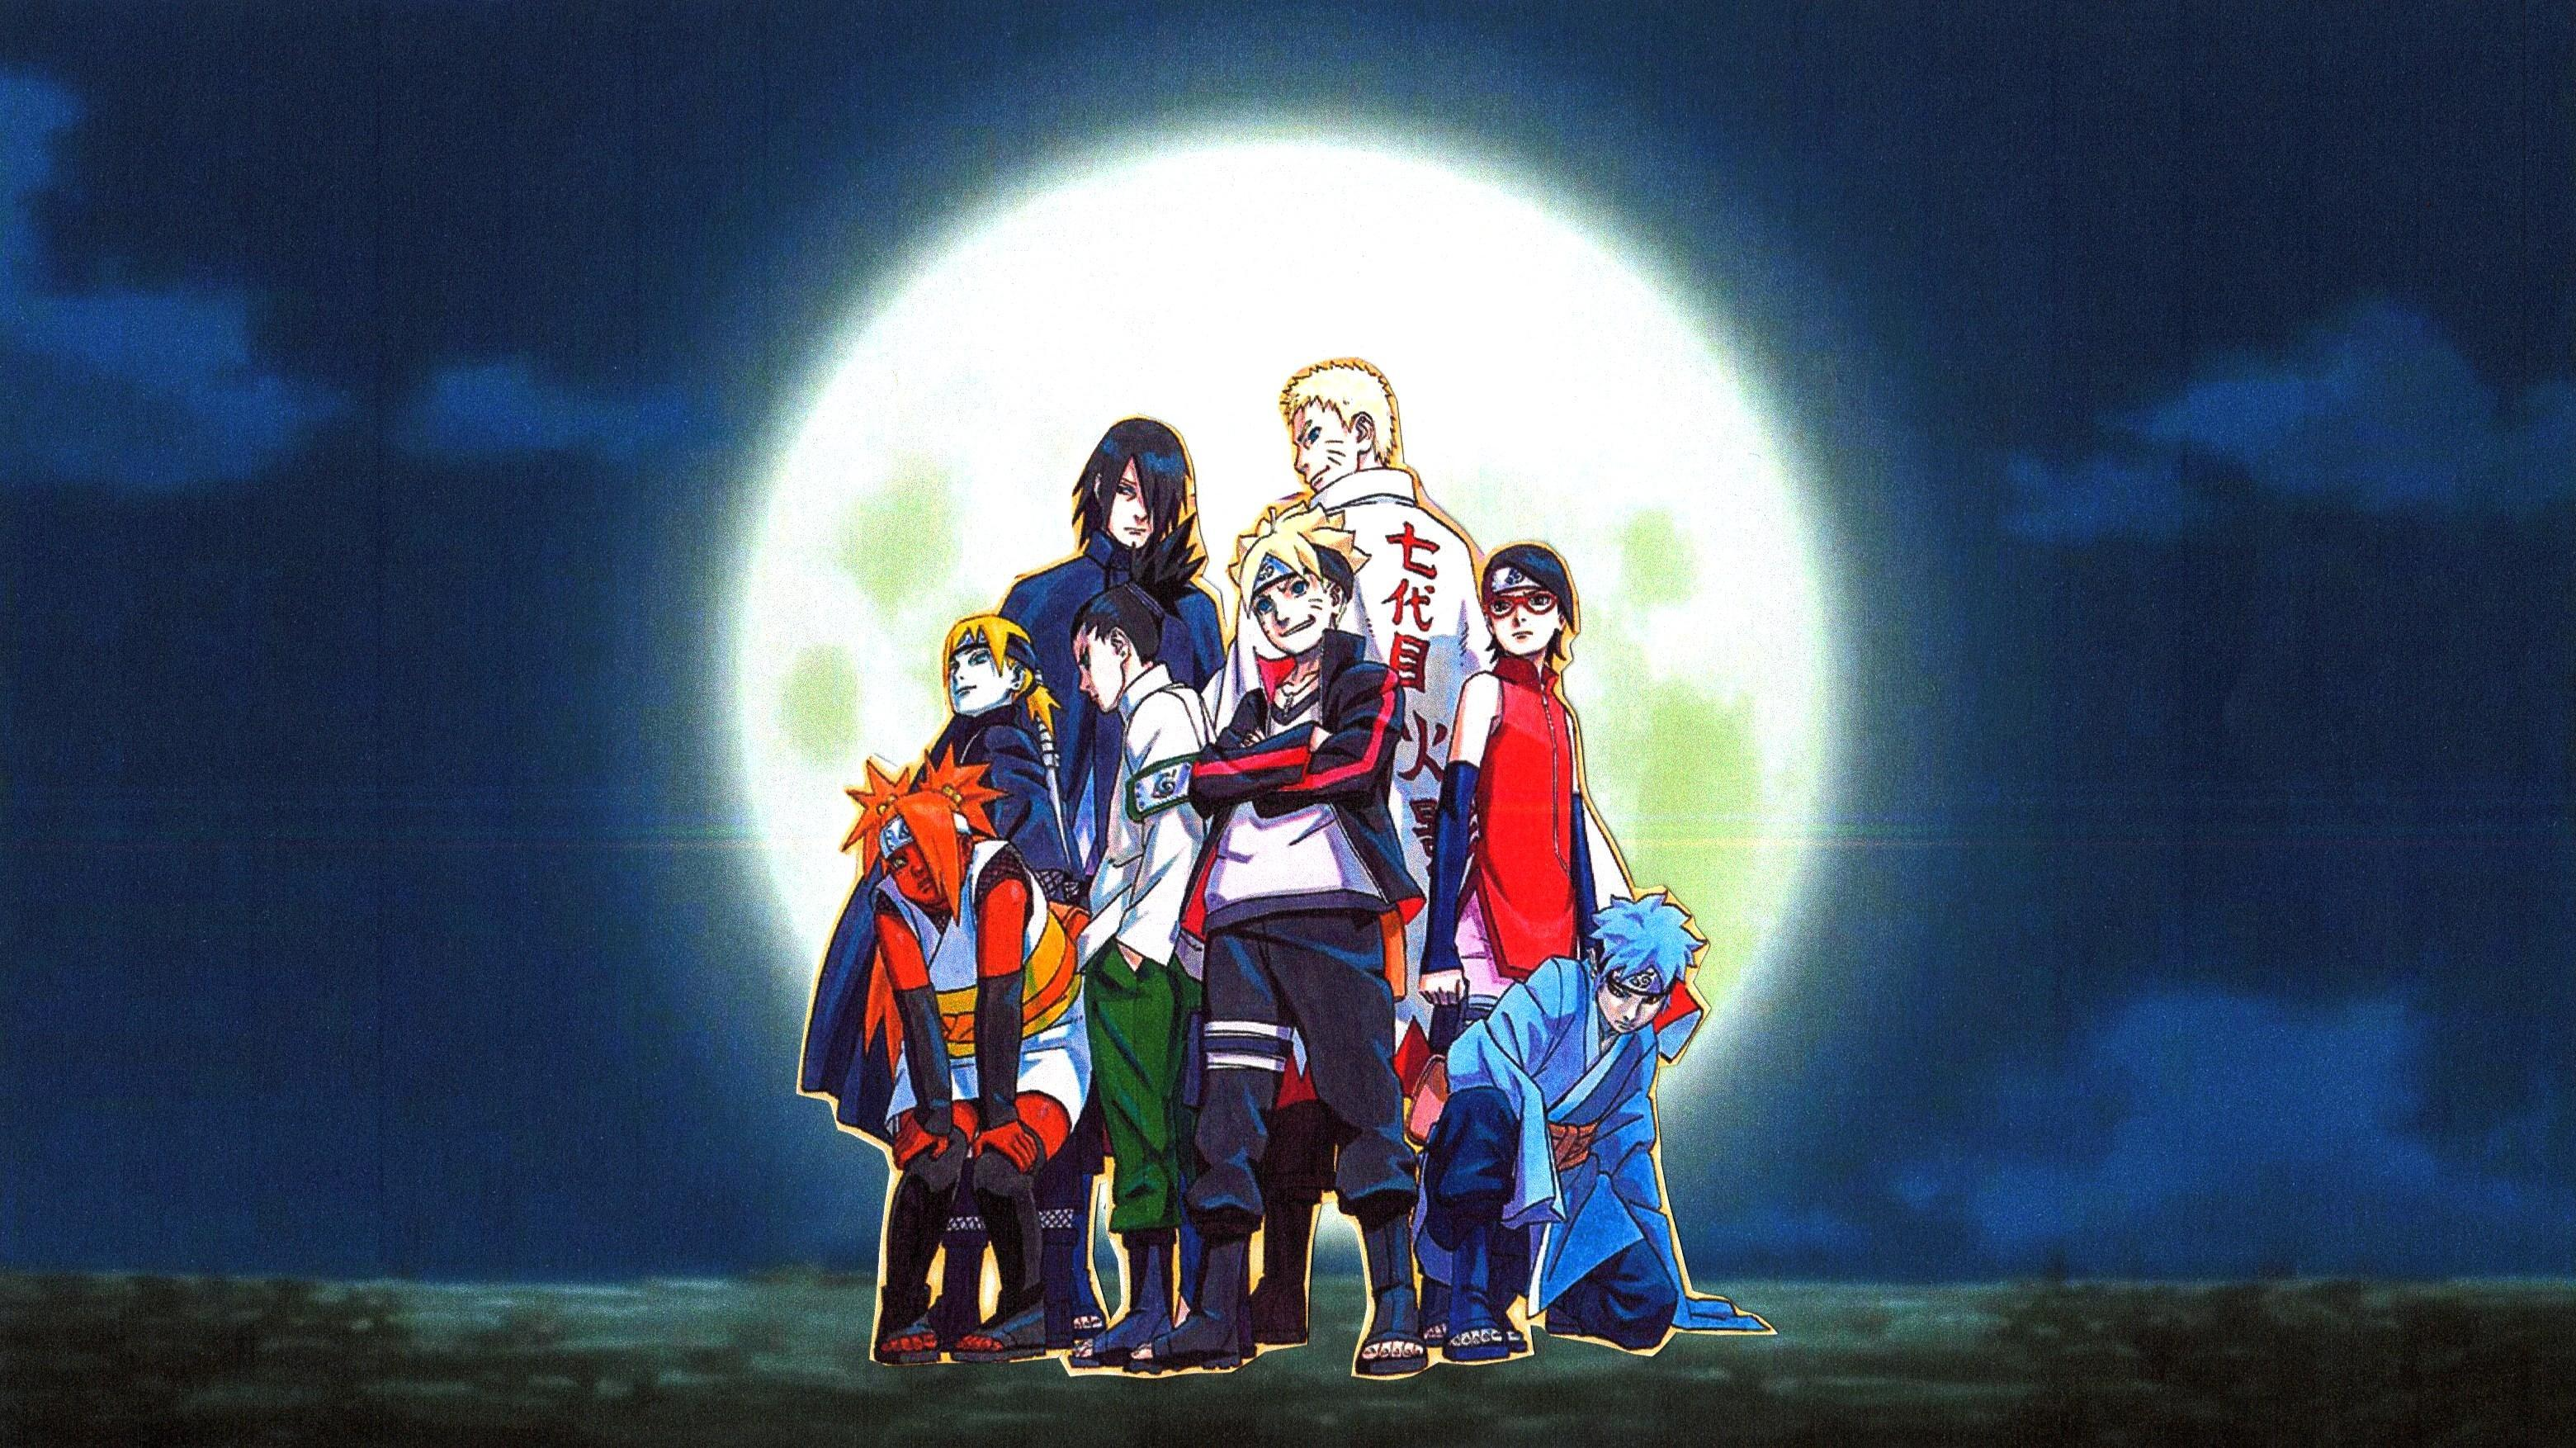 Must see Wallpaper Naruto Boruto - boruto_naruto_the_movie_wallpaper_2_by_weissdrum-d8xl0hk  You Should Have_201210.jpg